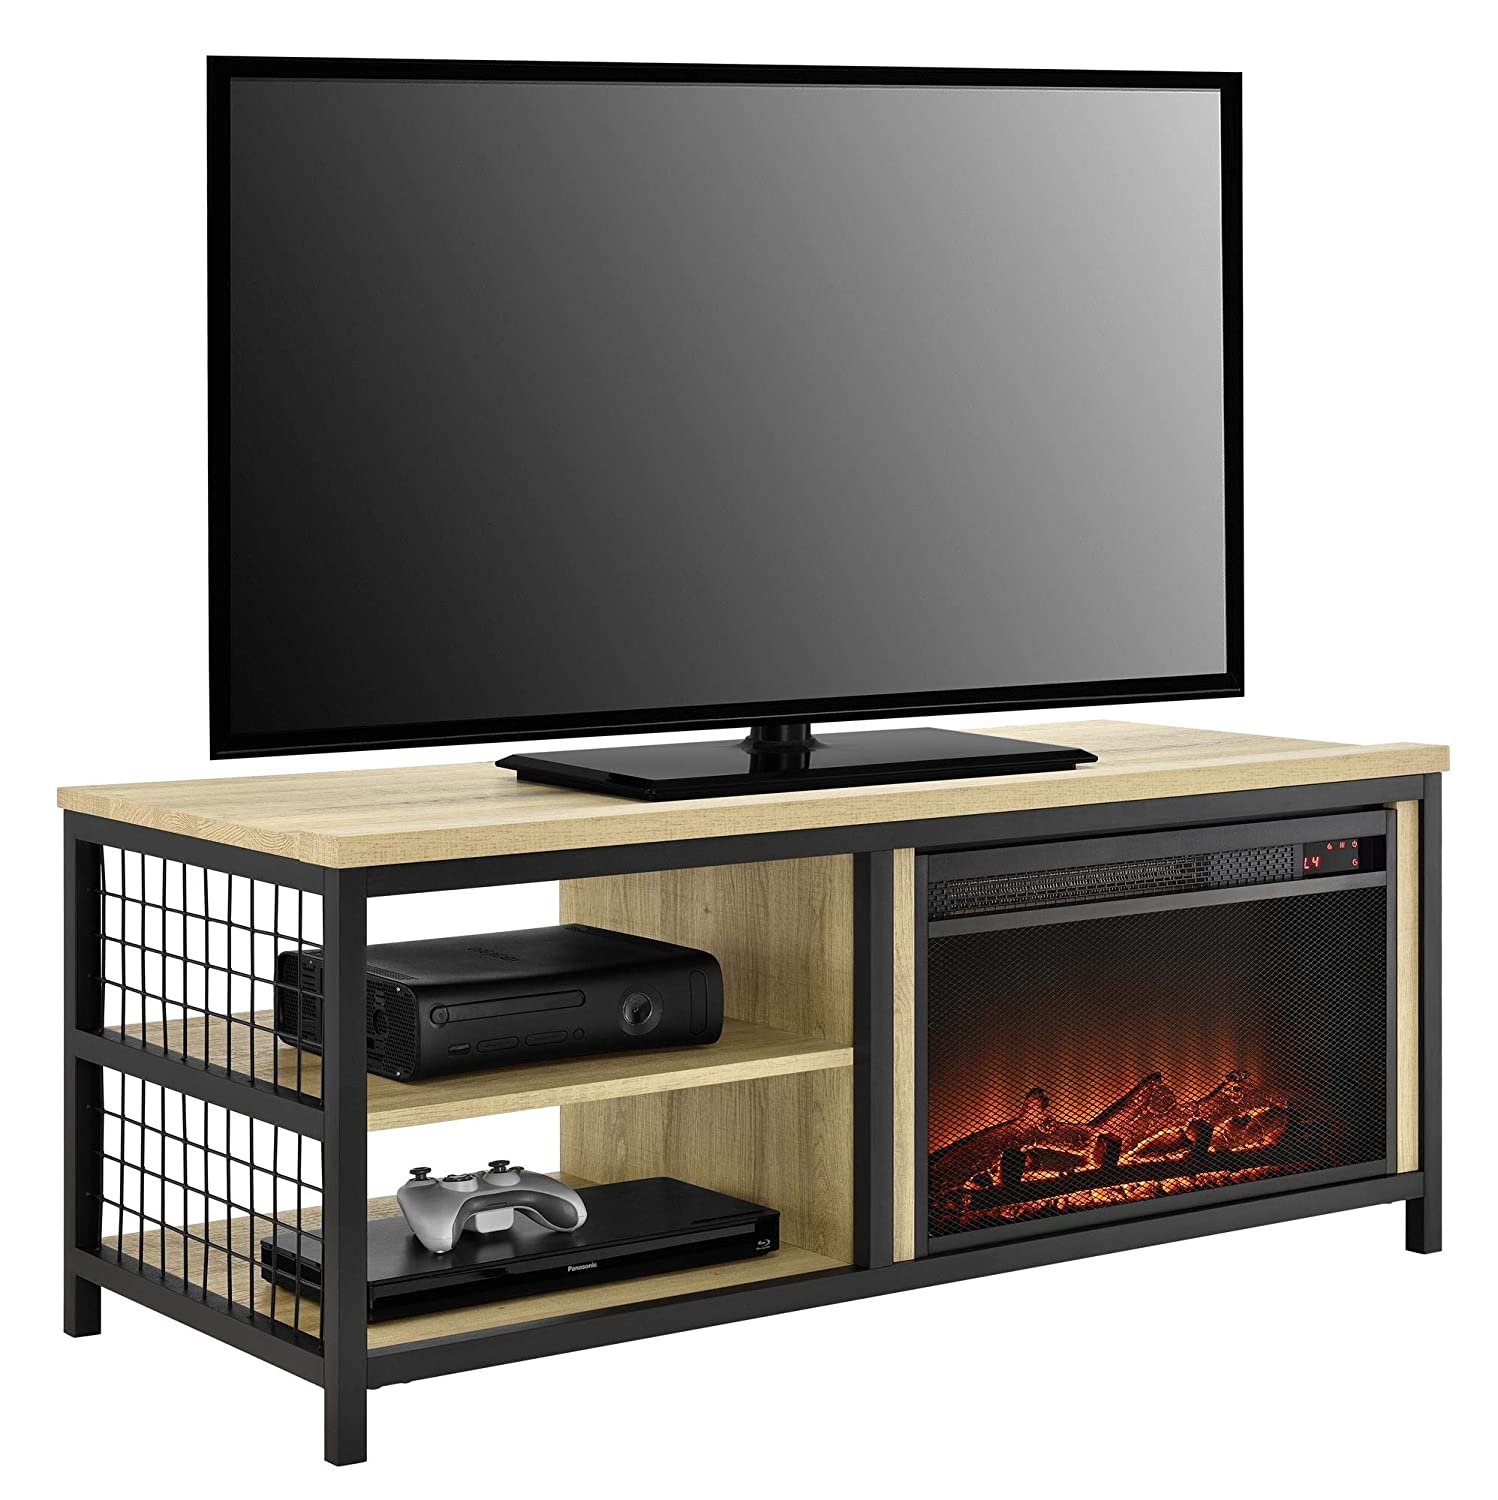 Ameriwood Home Brookspoint Fireplace TV Stand for TVs up to 55 , Golden Oak